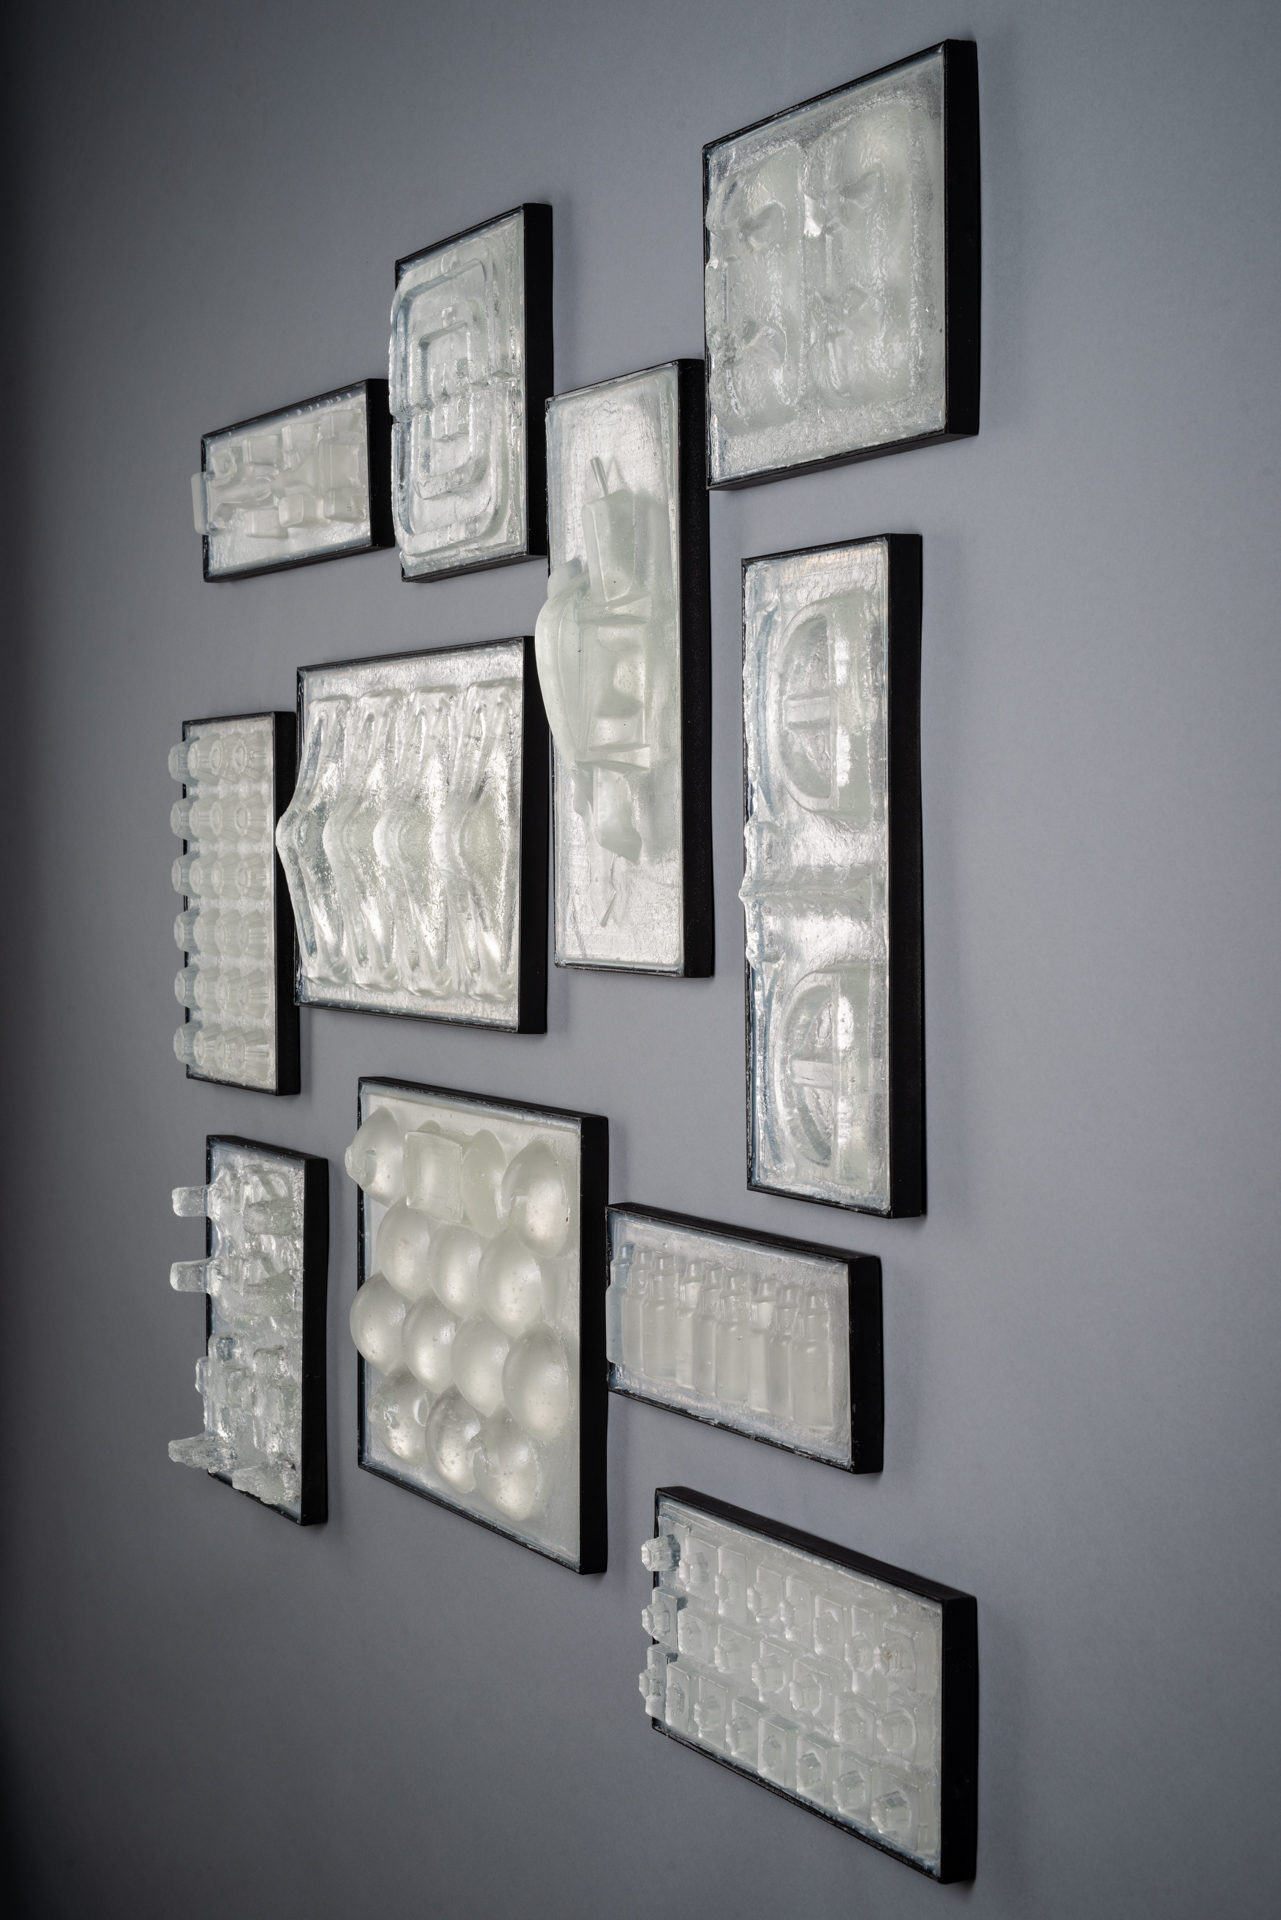 Wall sculpture from recycled glass, steel